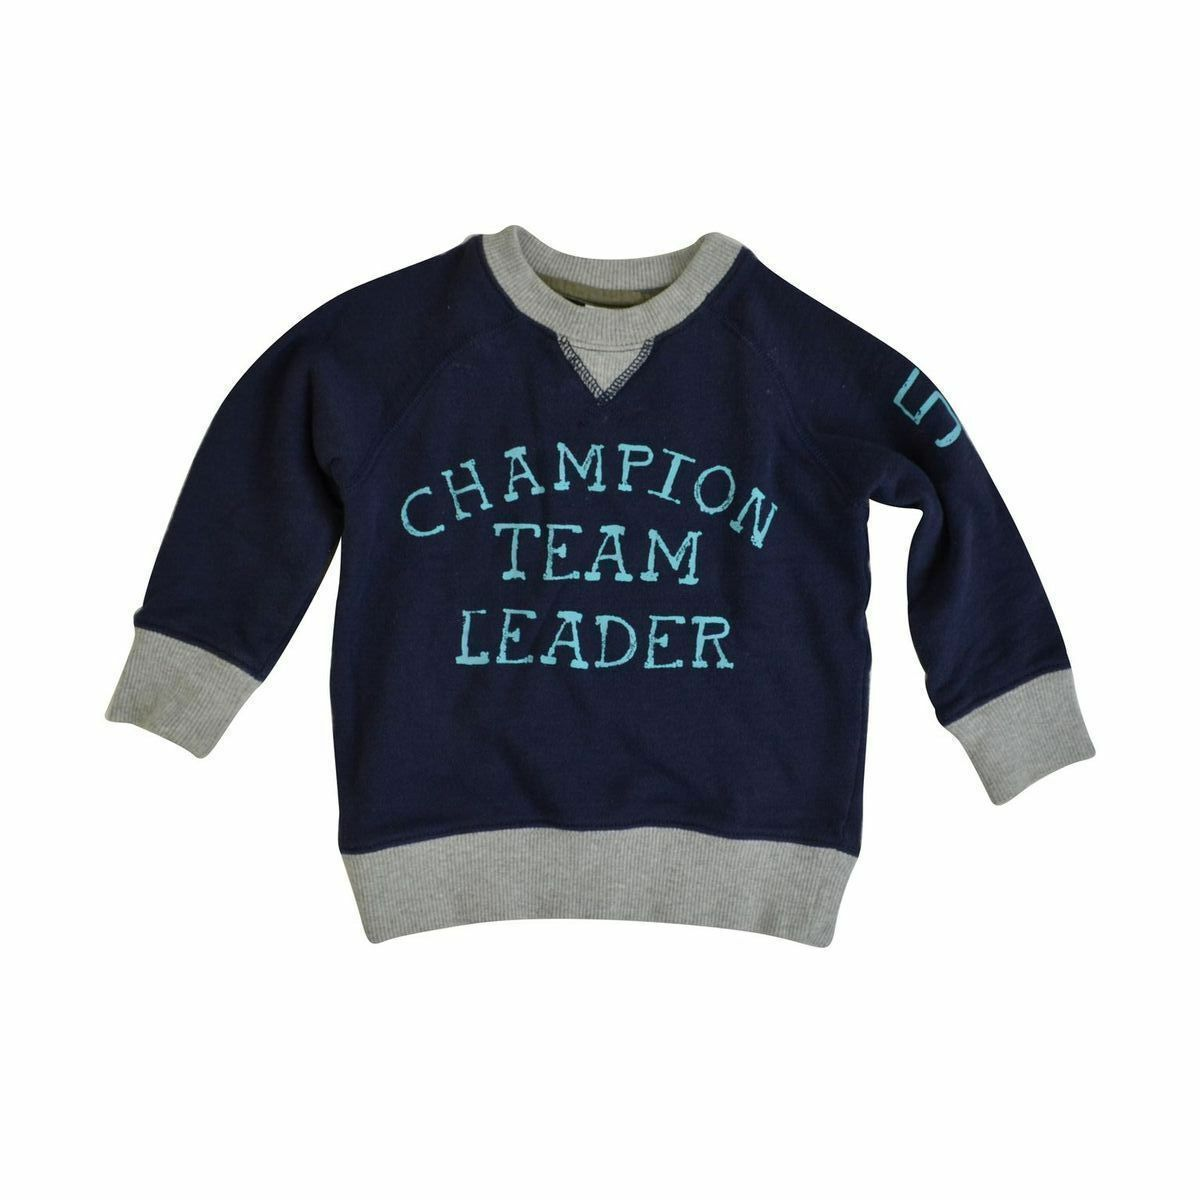 85f5a5cf6 Details about NWOT Carter's Toddler Boy's Pull Over Sweater Navy Grey 2T